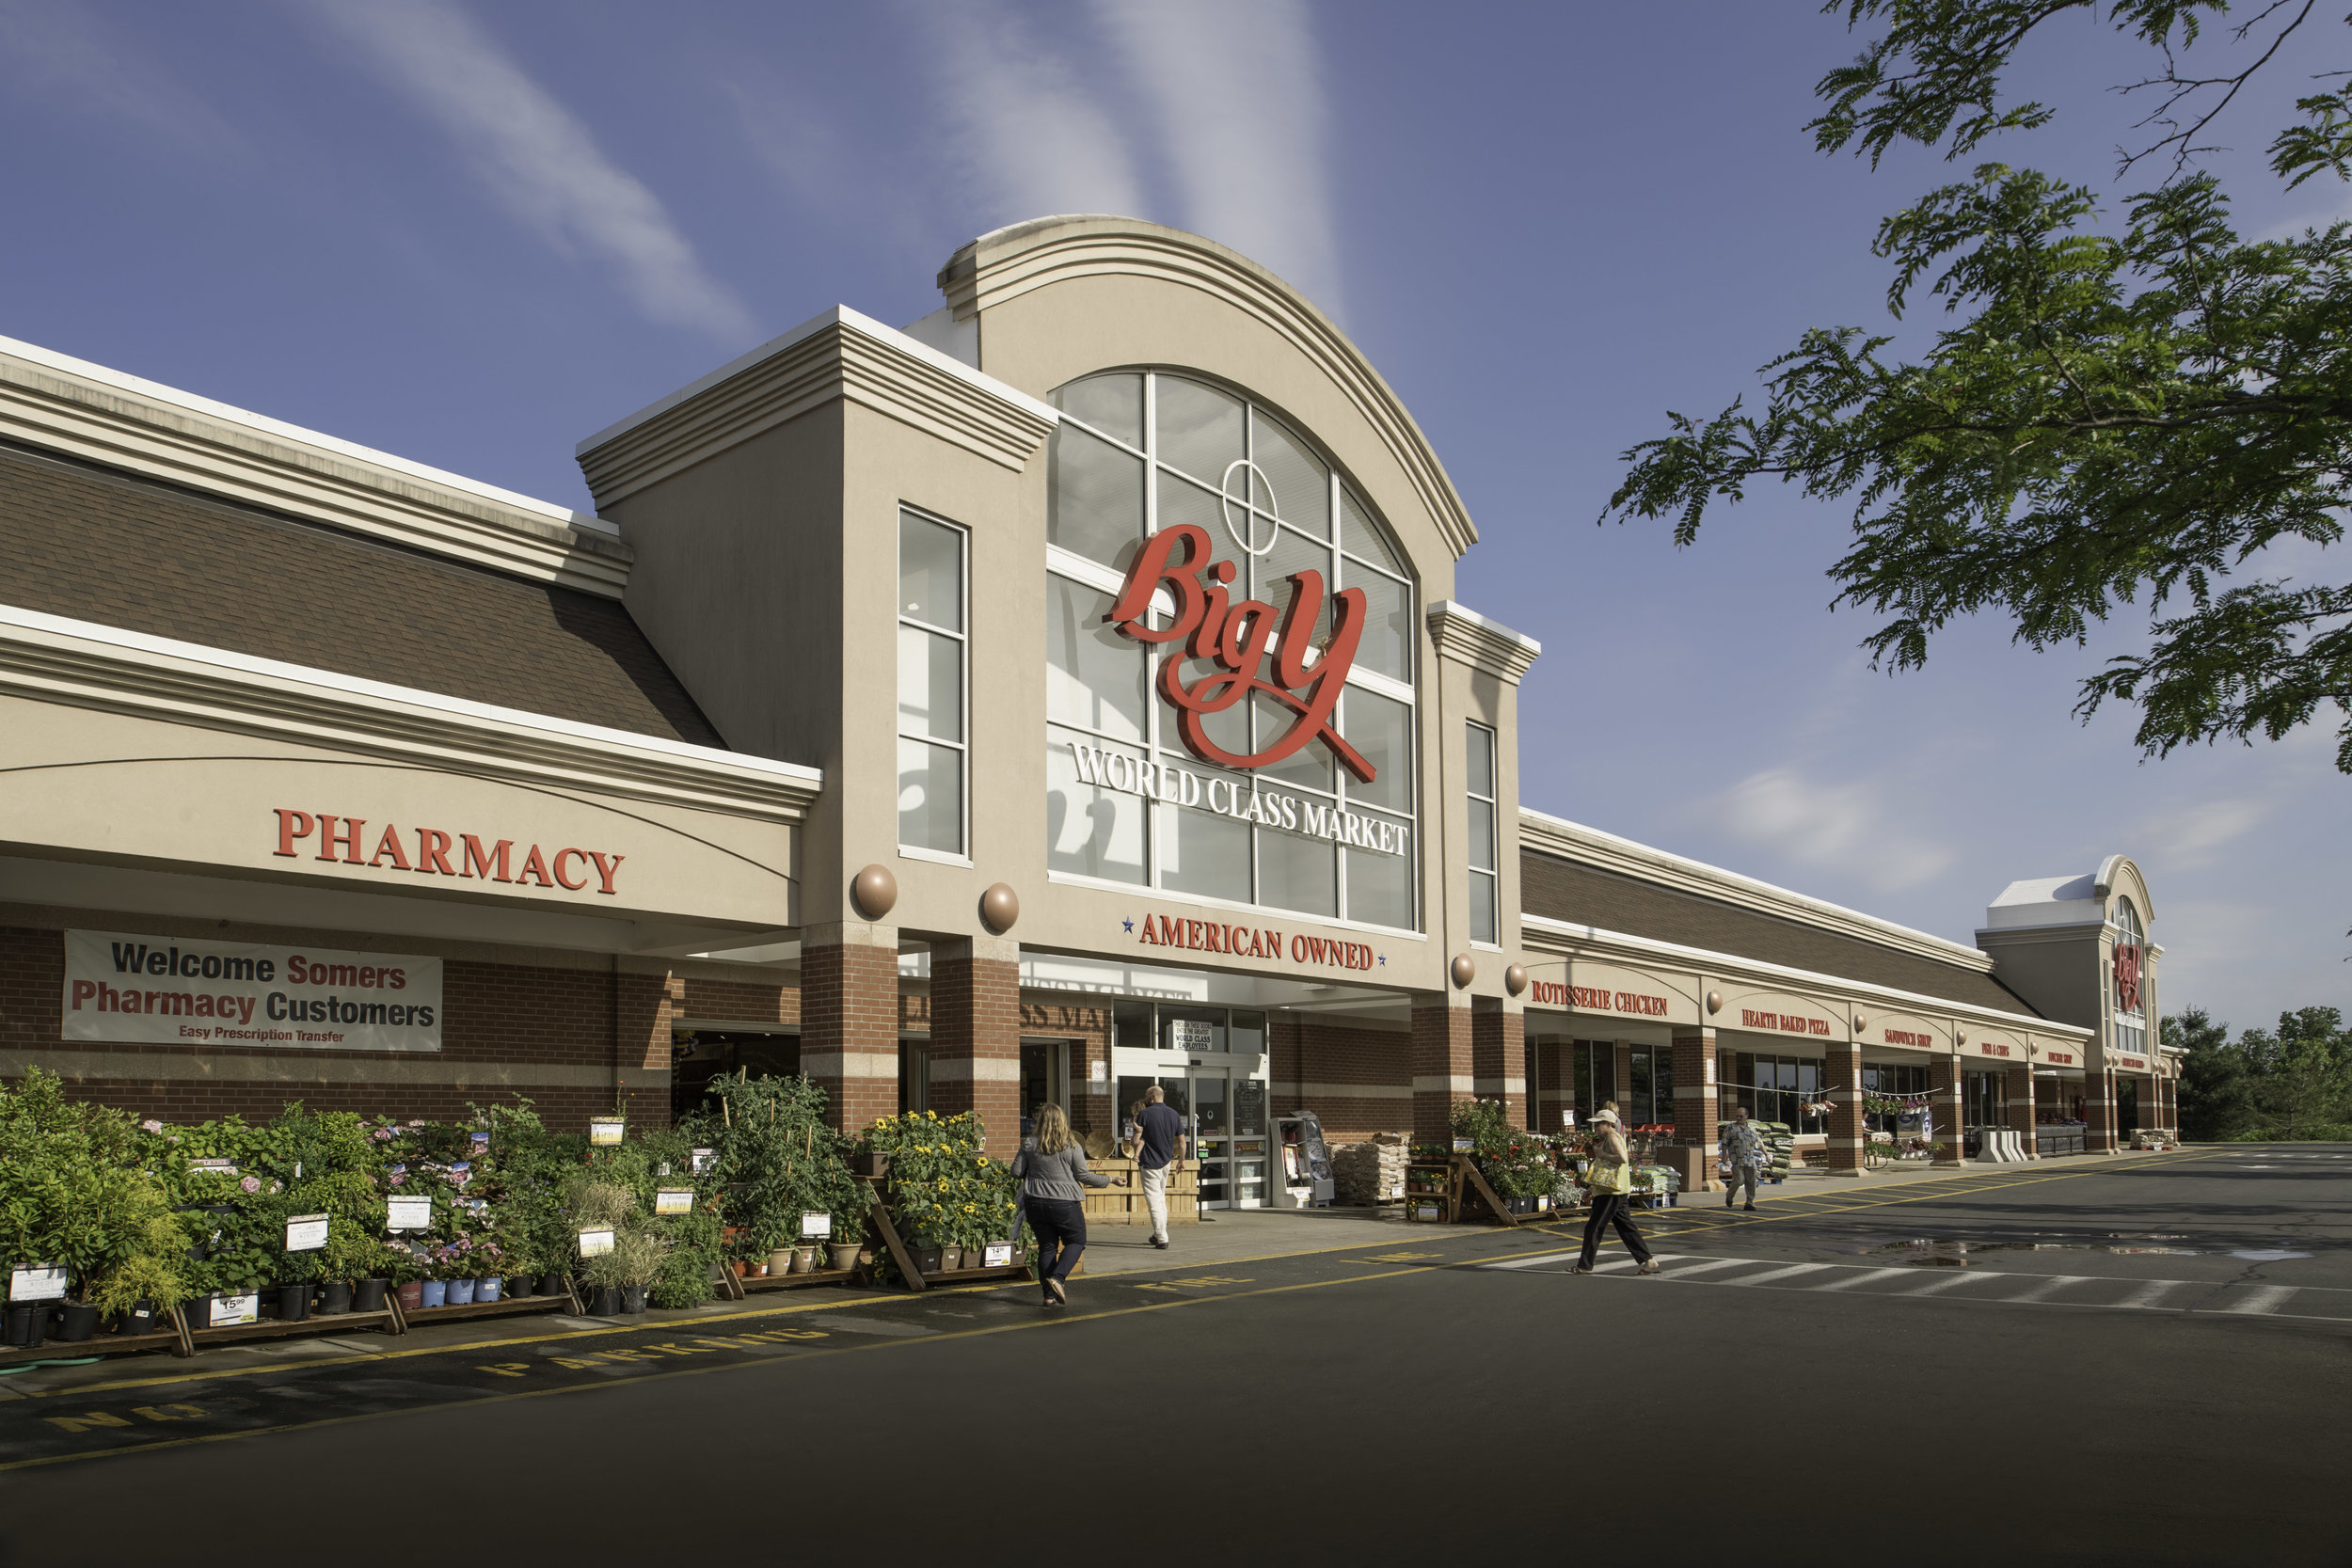 Big Y at Valley Farms - The Big Y World Class Market at Valley Farms generated demand for additional retail and services. Now, Ellington's expanding...